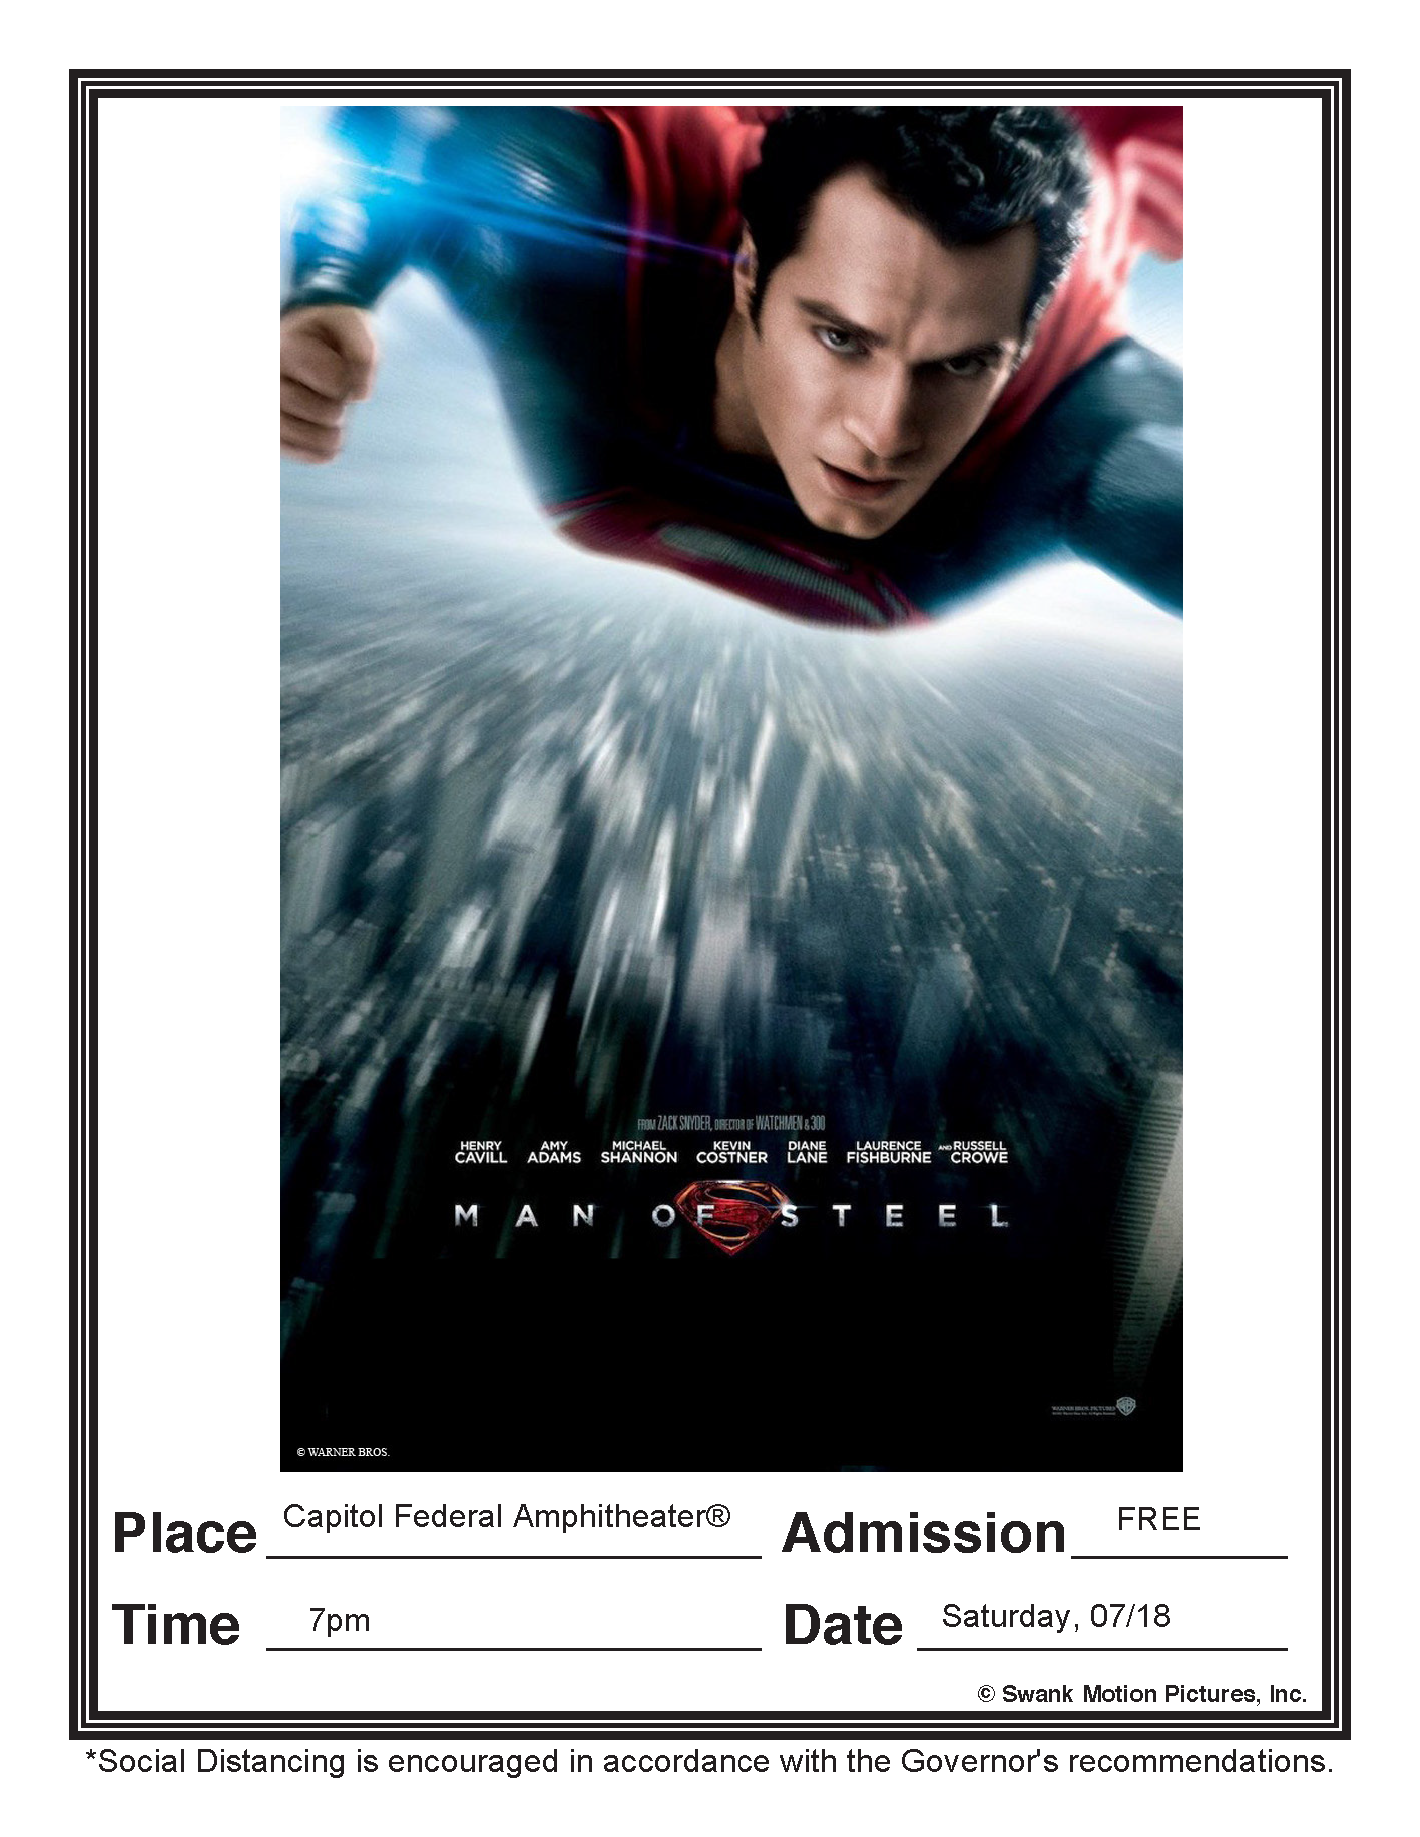 Man of Steel - 07/18/20 7pm